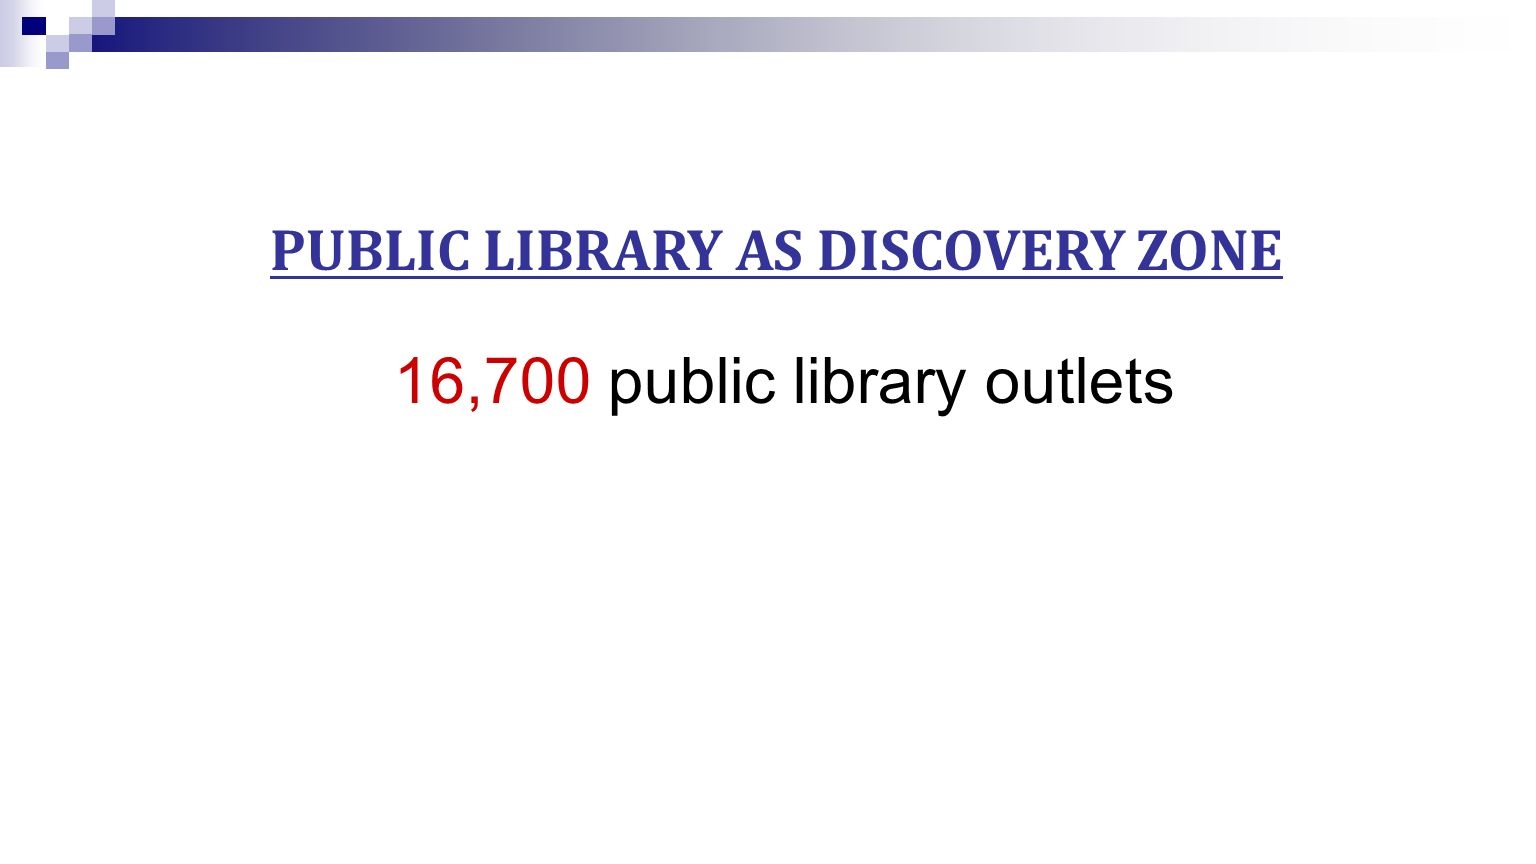 PUBLIC LIBRARY AS DISCOVERY ZONE 16,700 public library outlets